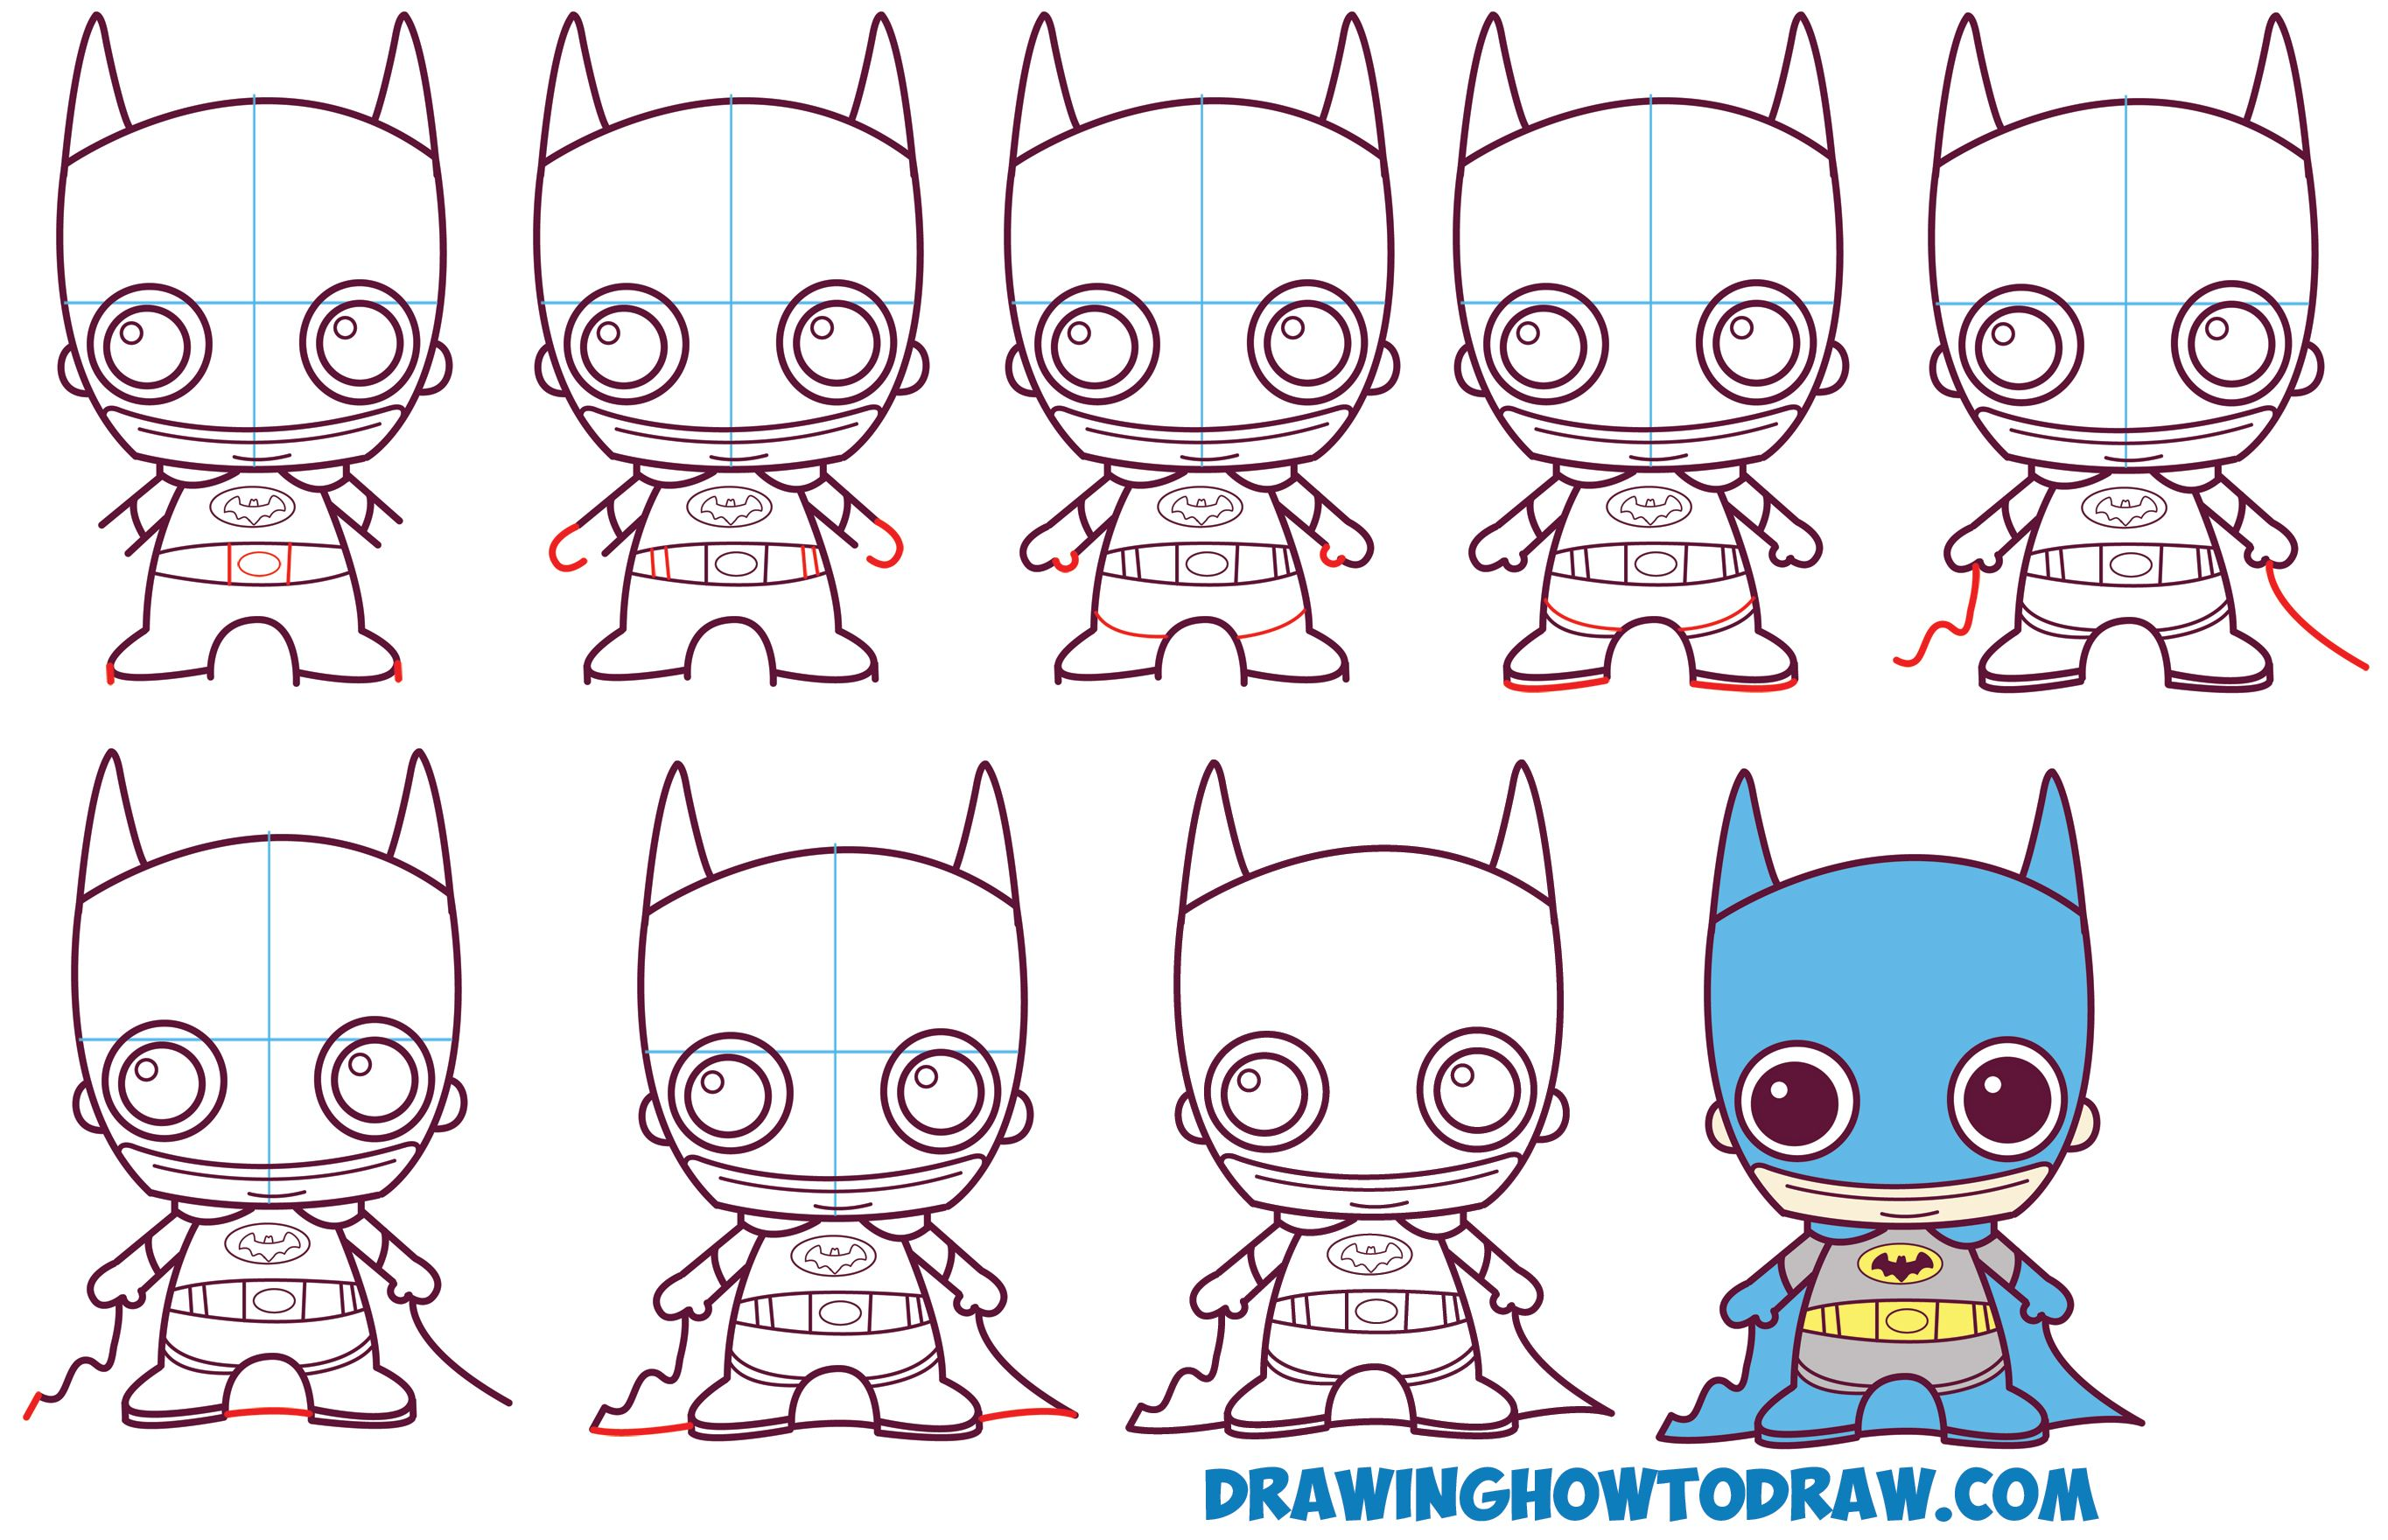 How to Draw Cute Chibi Batman from DC Comics in Easy Step by Step ...